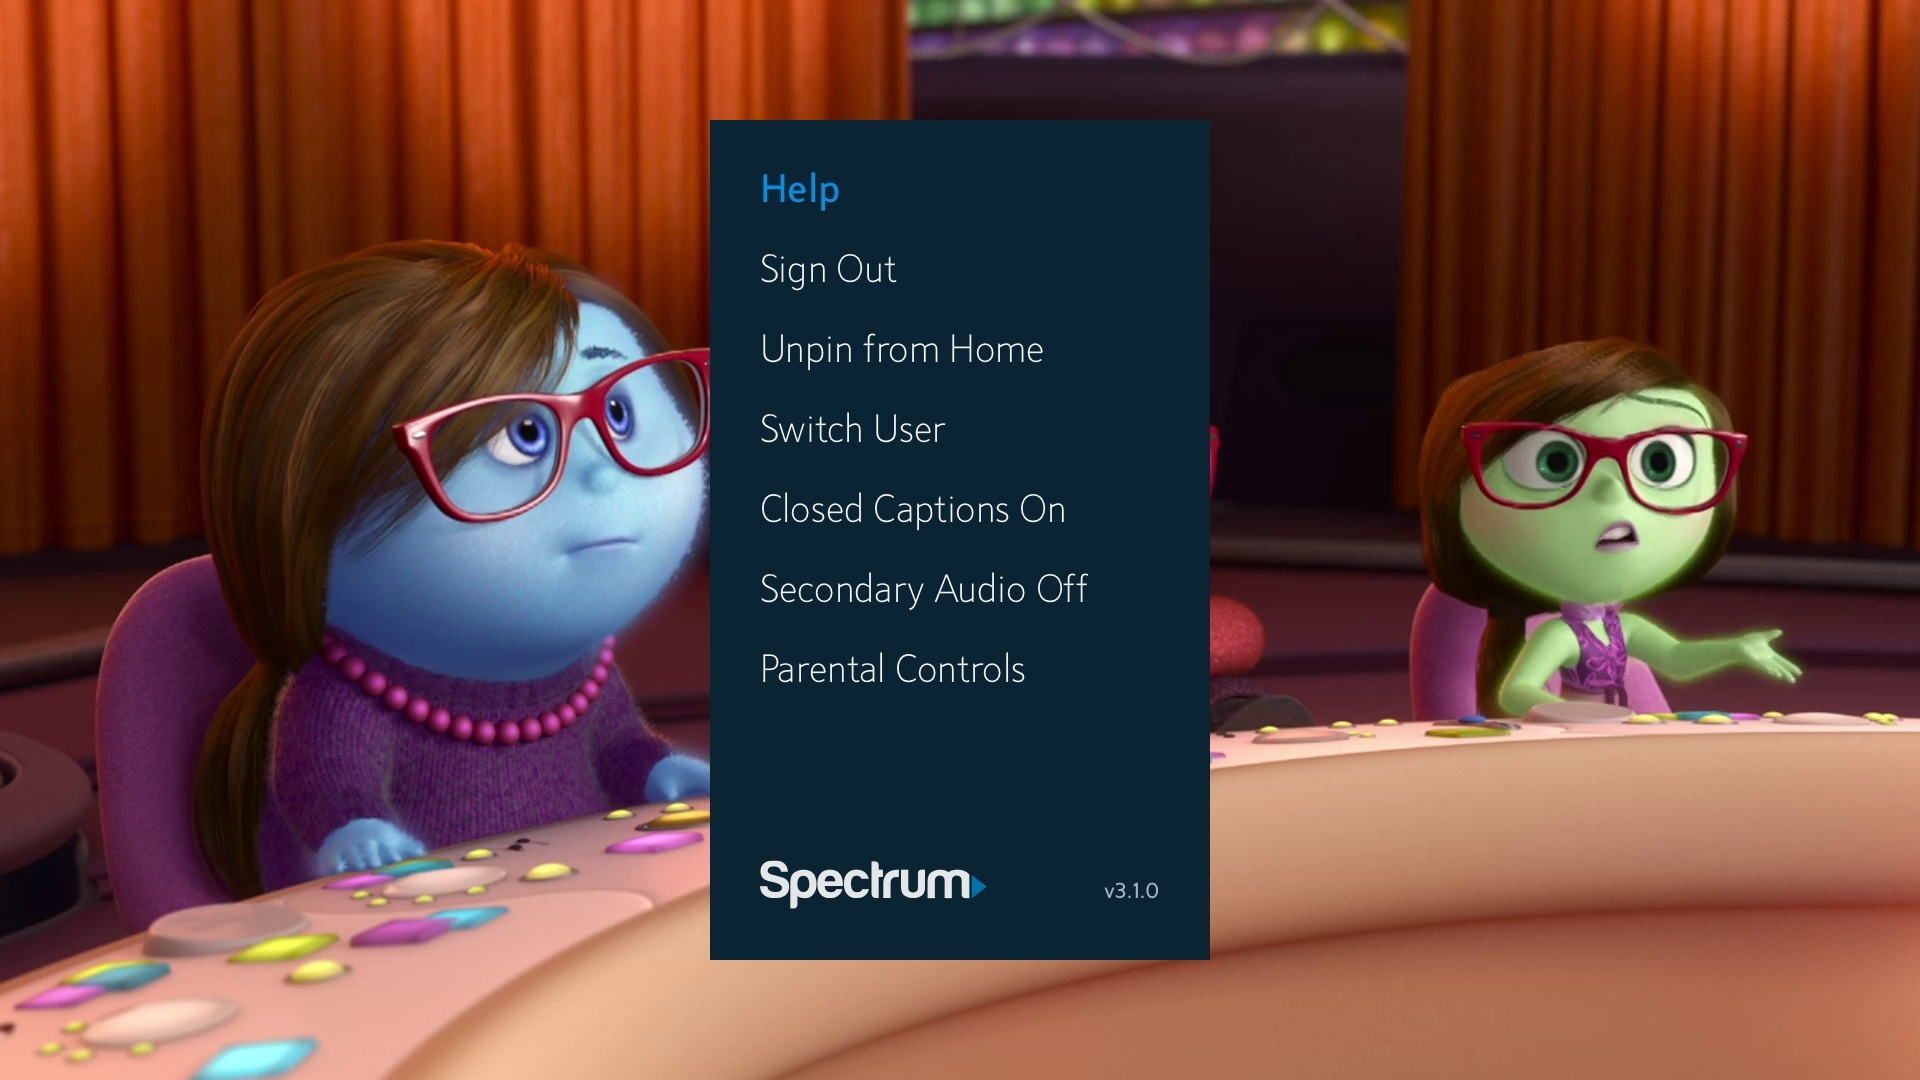 Xbox Spectrum TV app settings menu